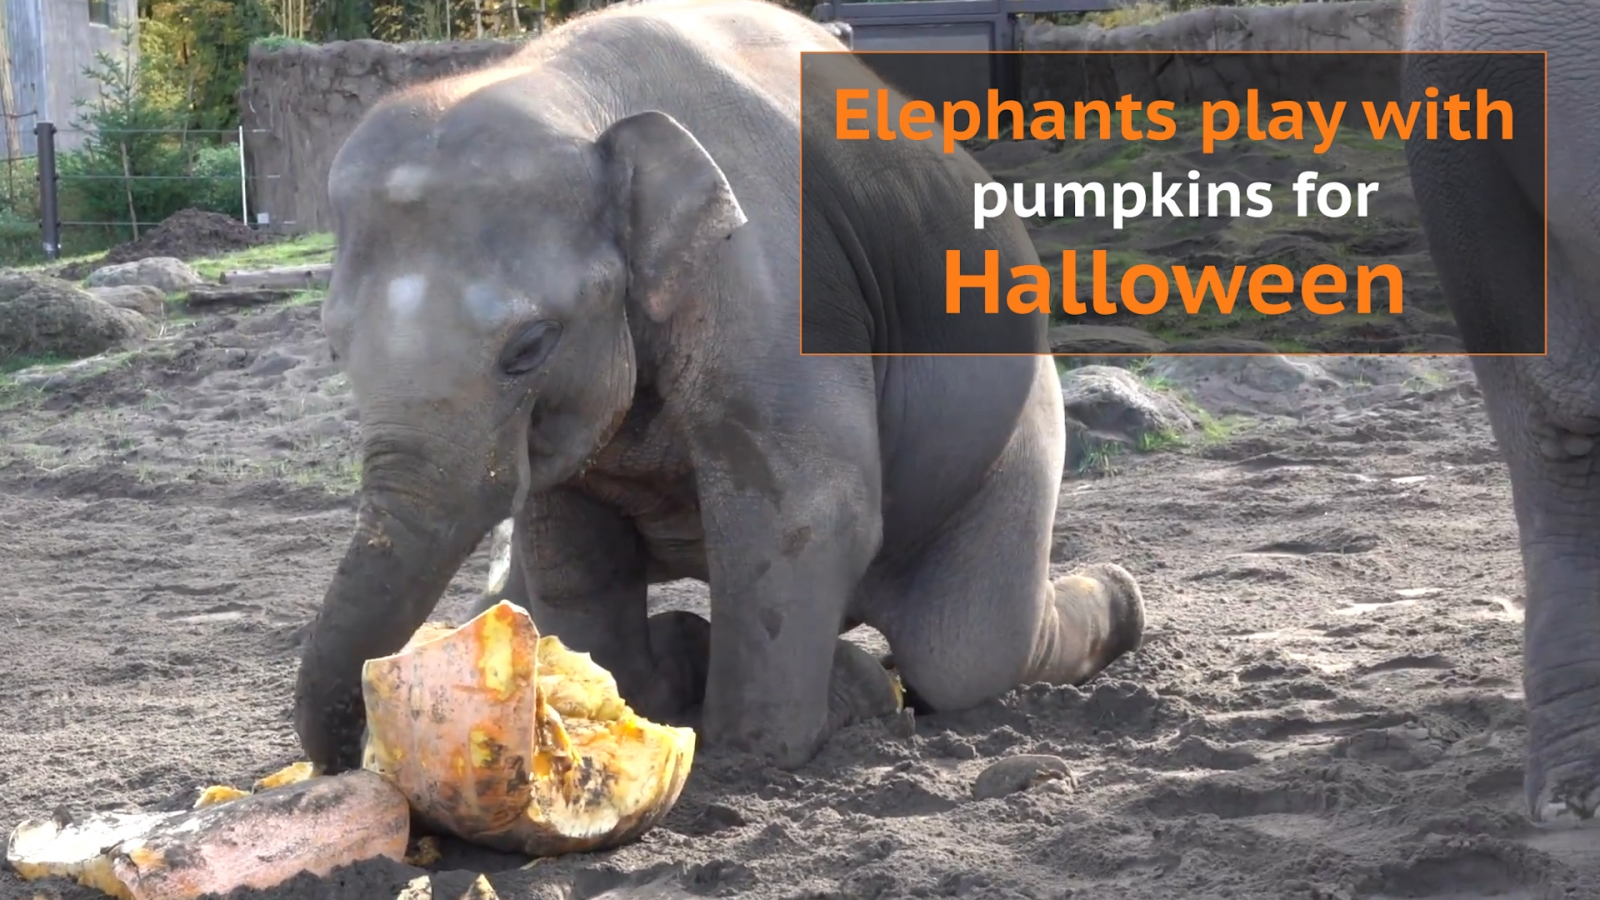 Oregon Zoo elephants Halloween pumpkins